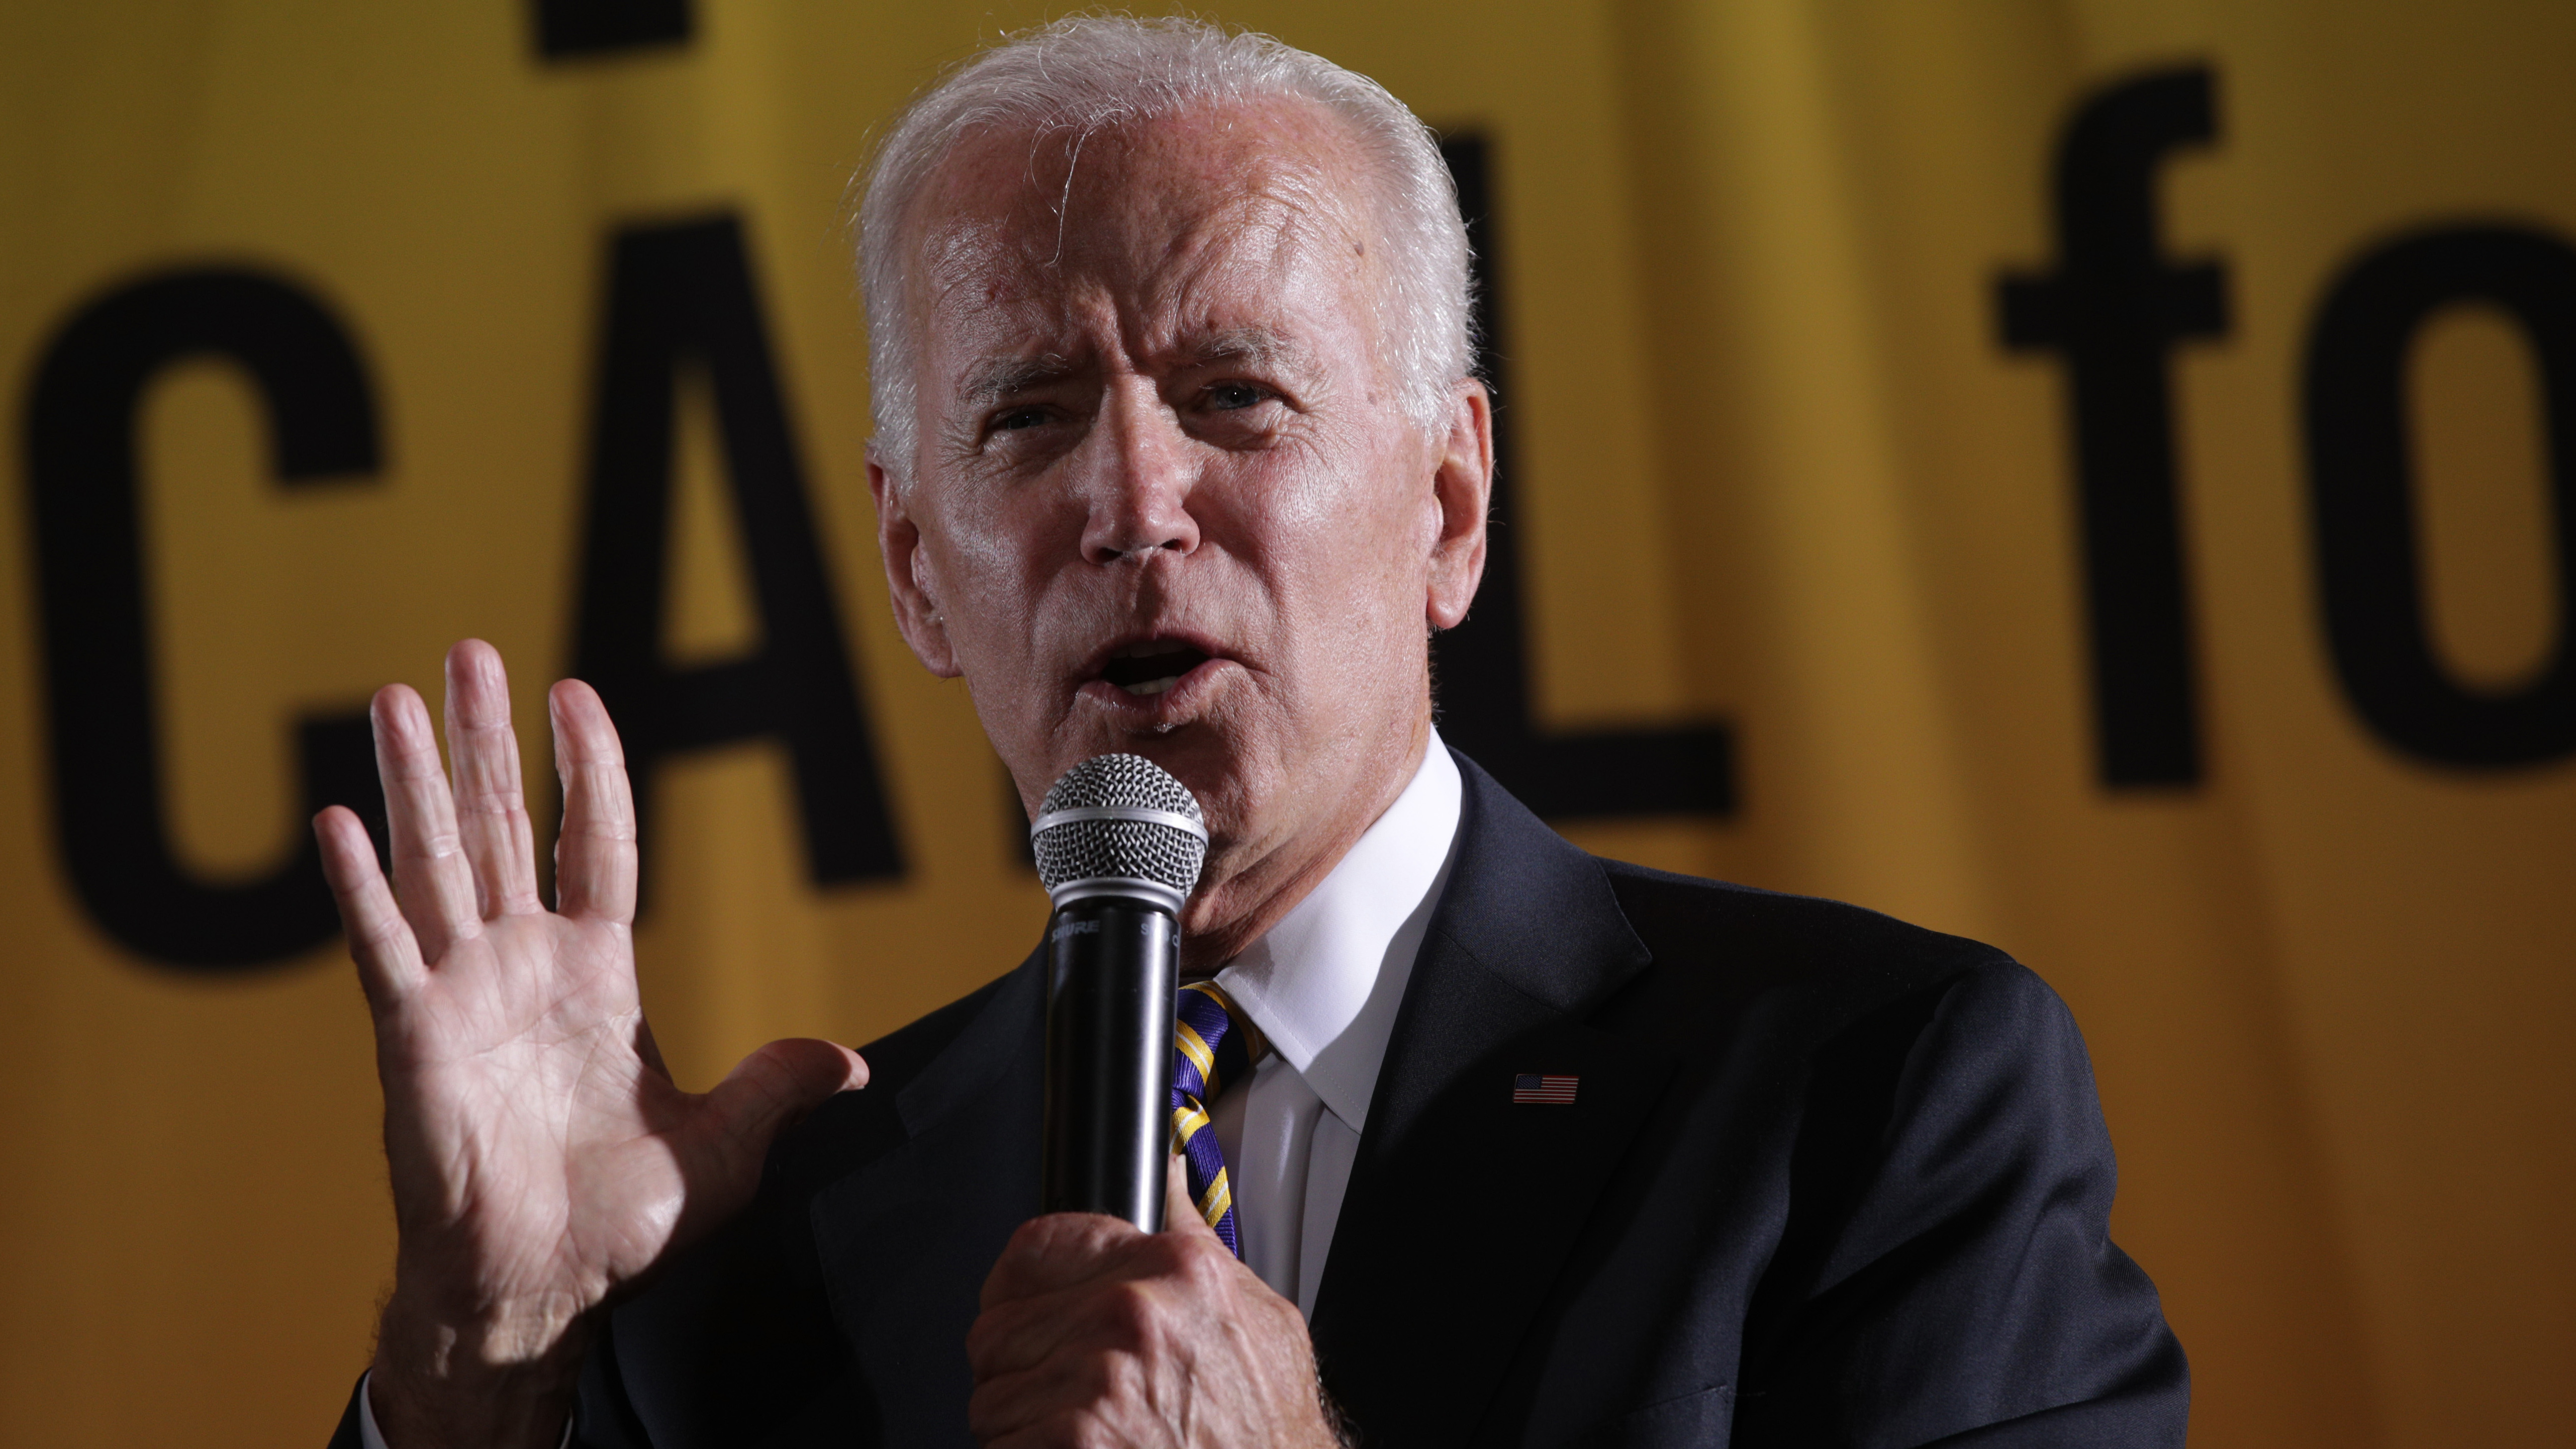 Biden Defends Comments About Working With Segregationist Lawmakers